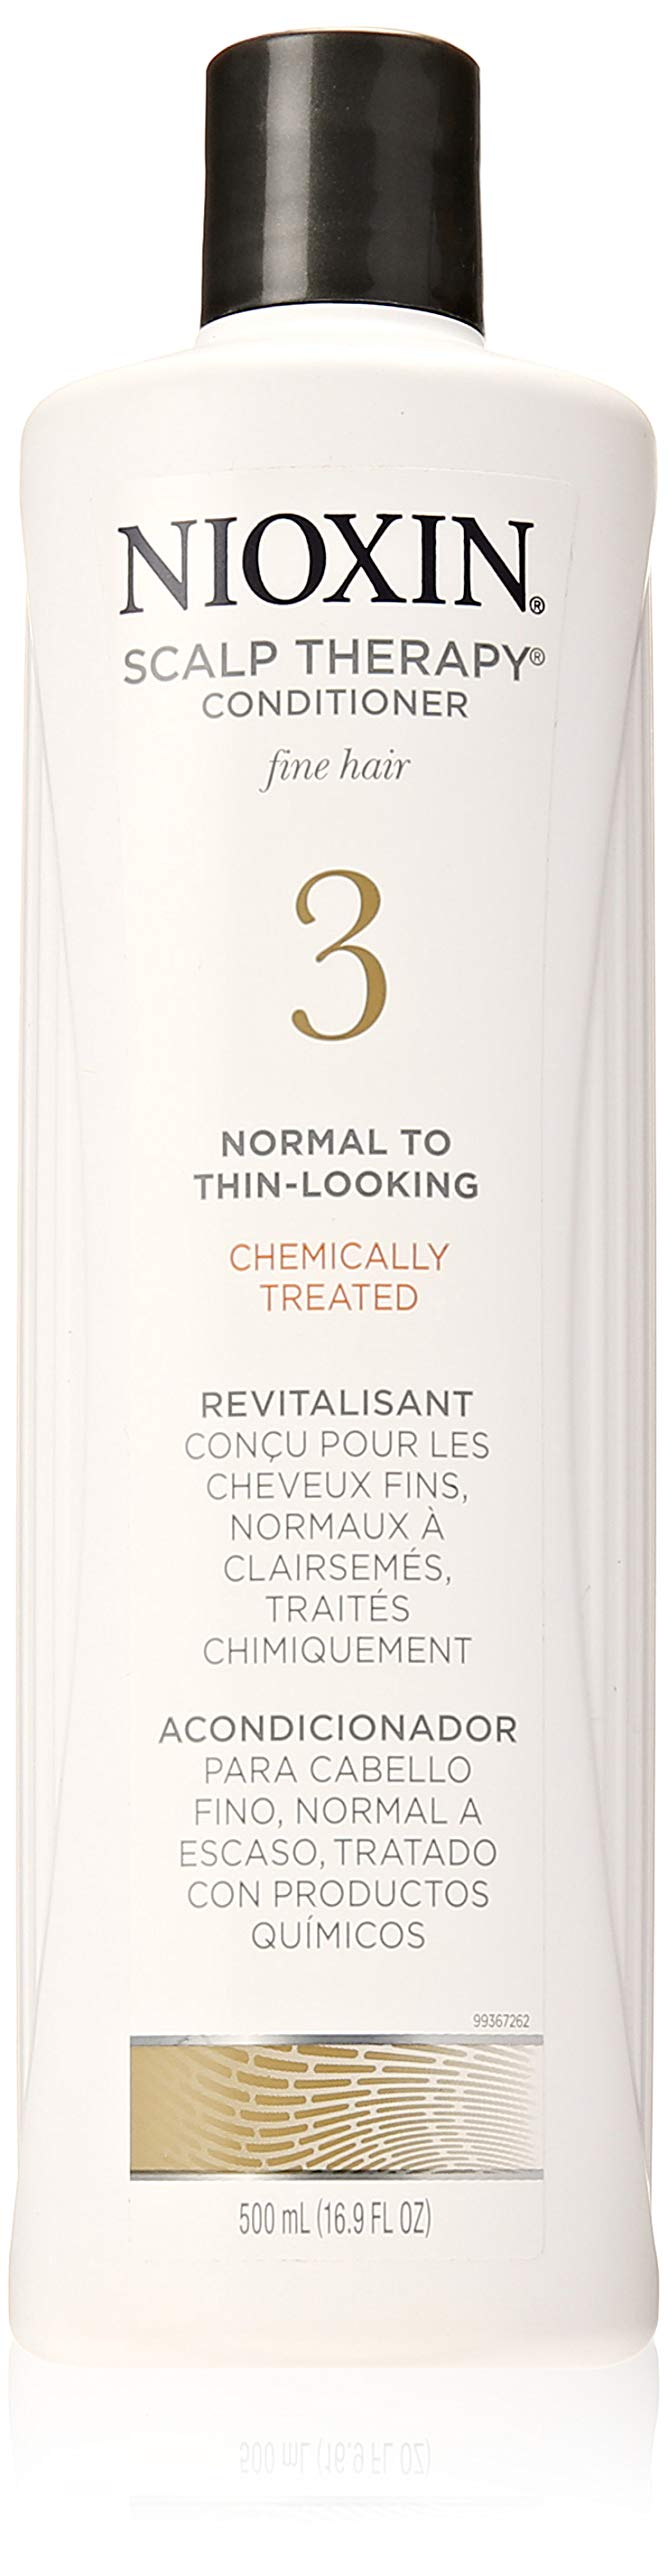 Nioxin Scalp Therapy Conditioner System 3 for Color Treated Hair with Light Thinning, 16.9 Ounce